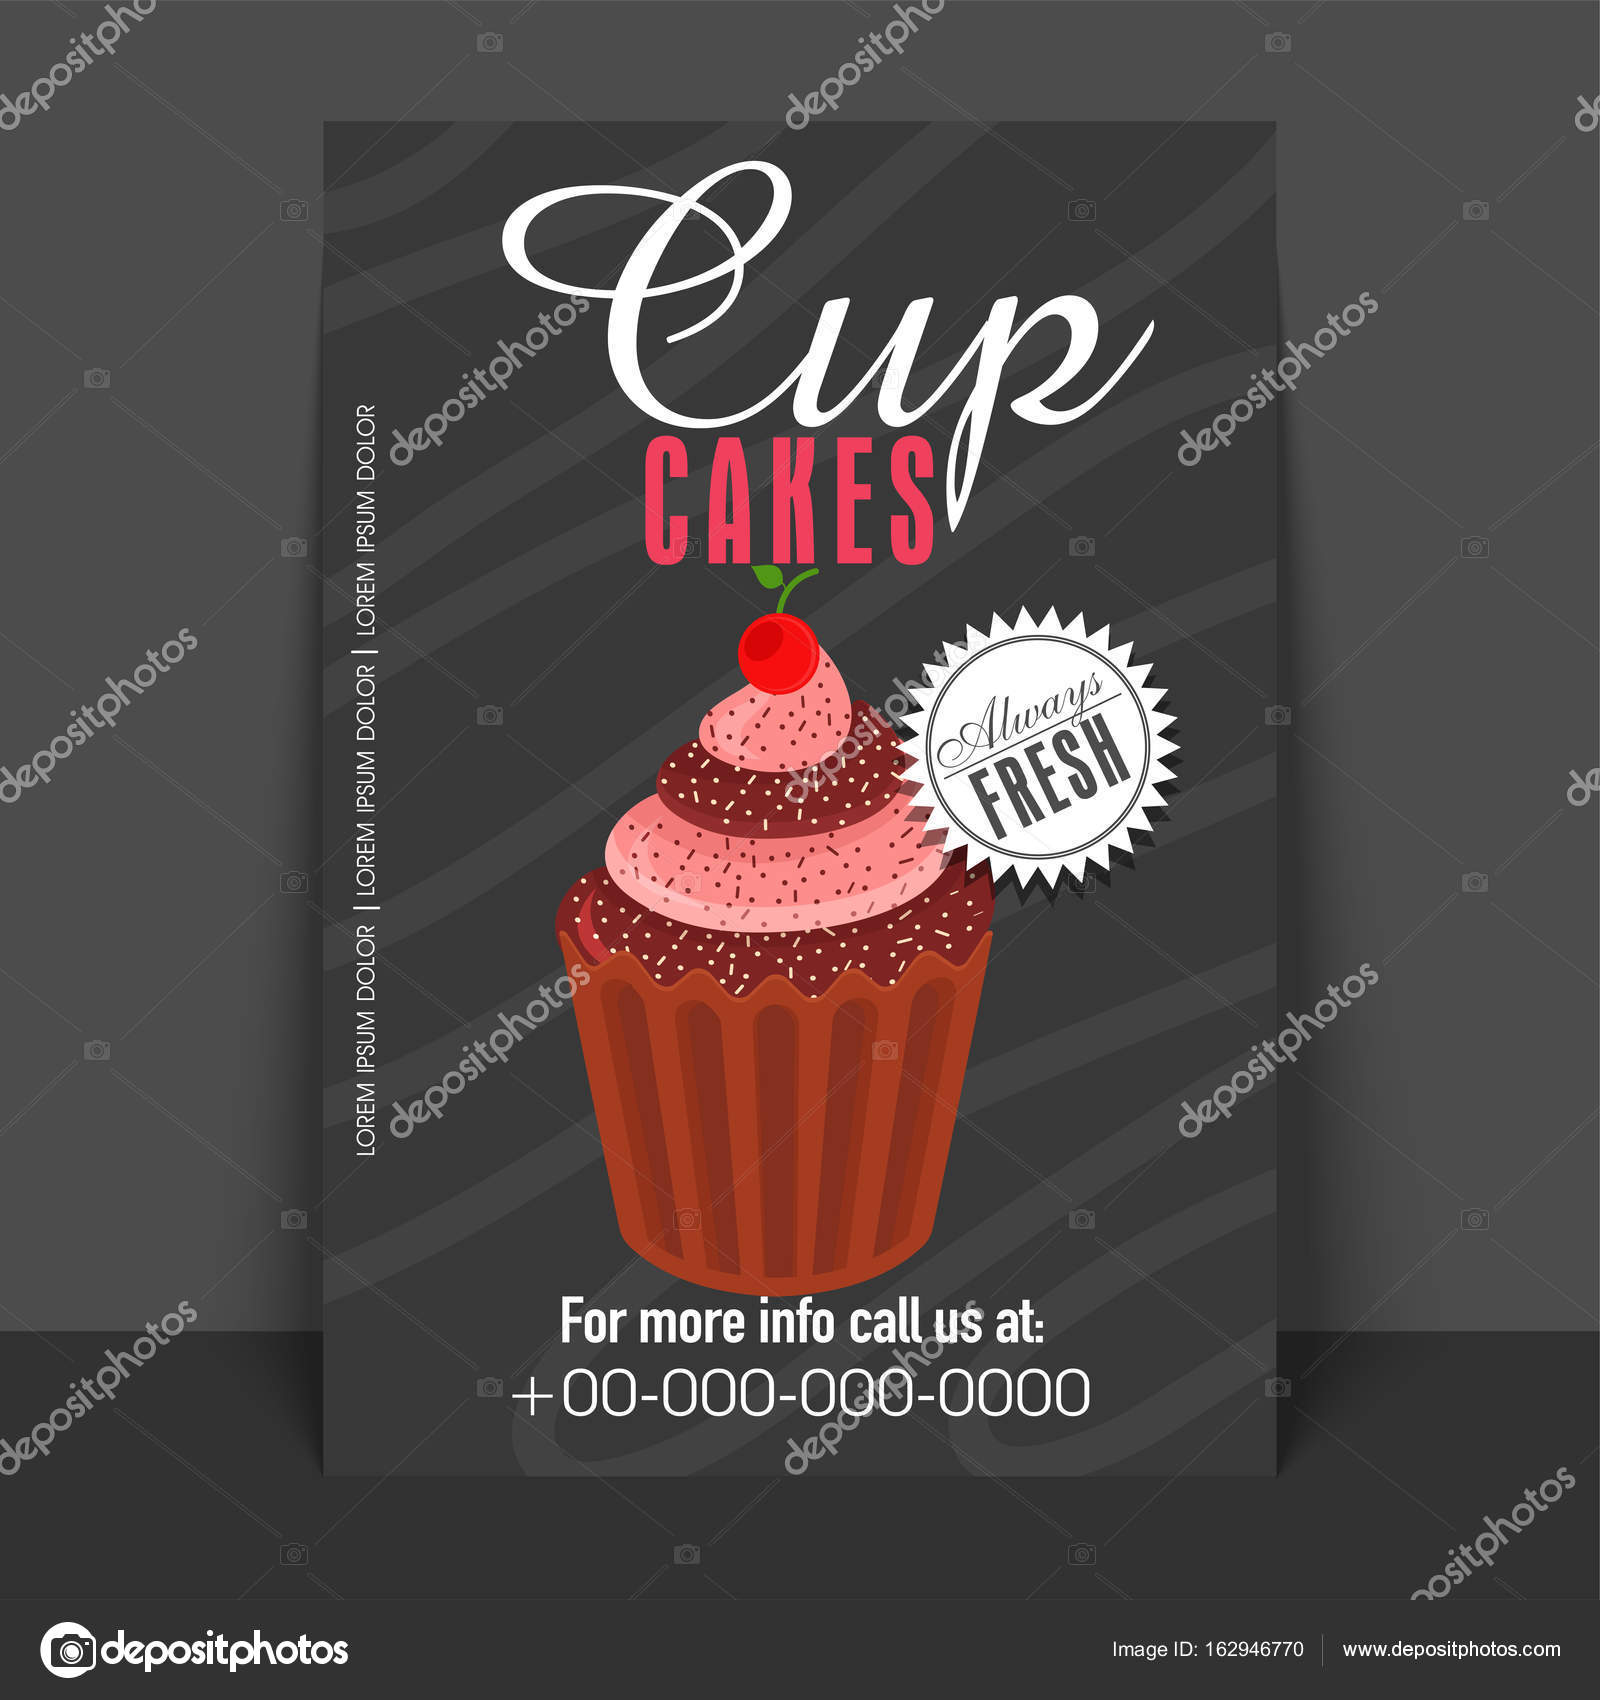 Bakery Flyer Template Or Banner Design With Illustration Of Sweet Delicious Cupcake Vector By Alliesinteract